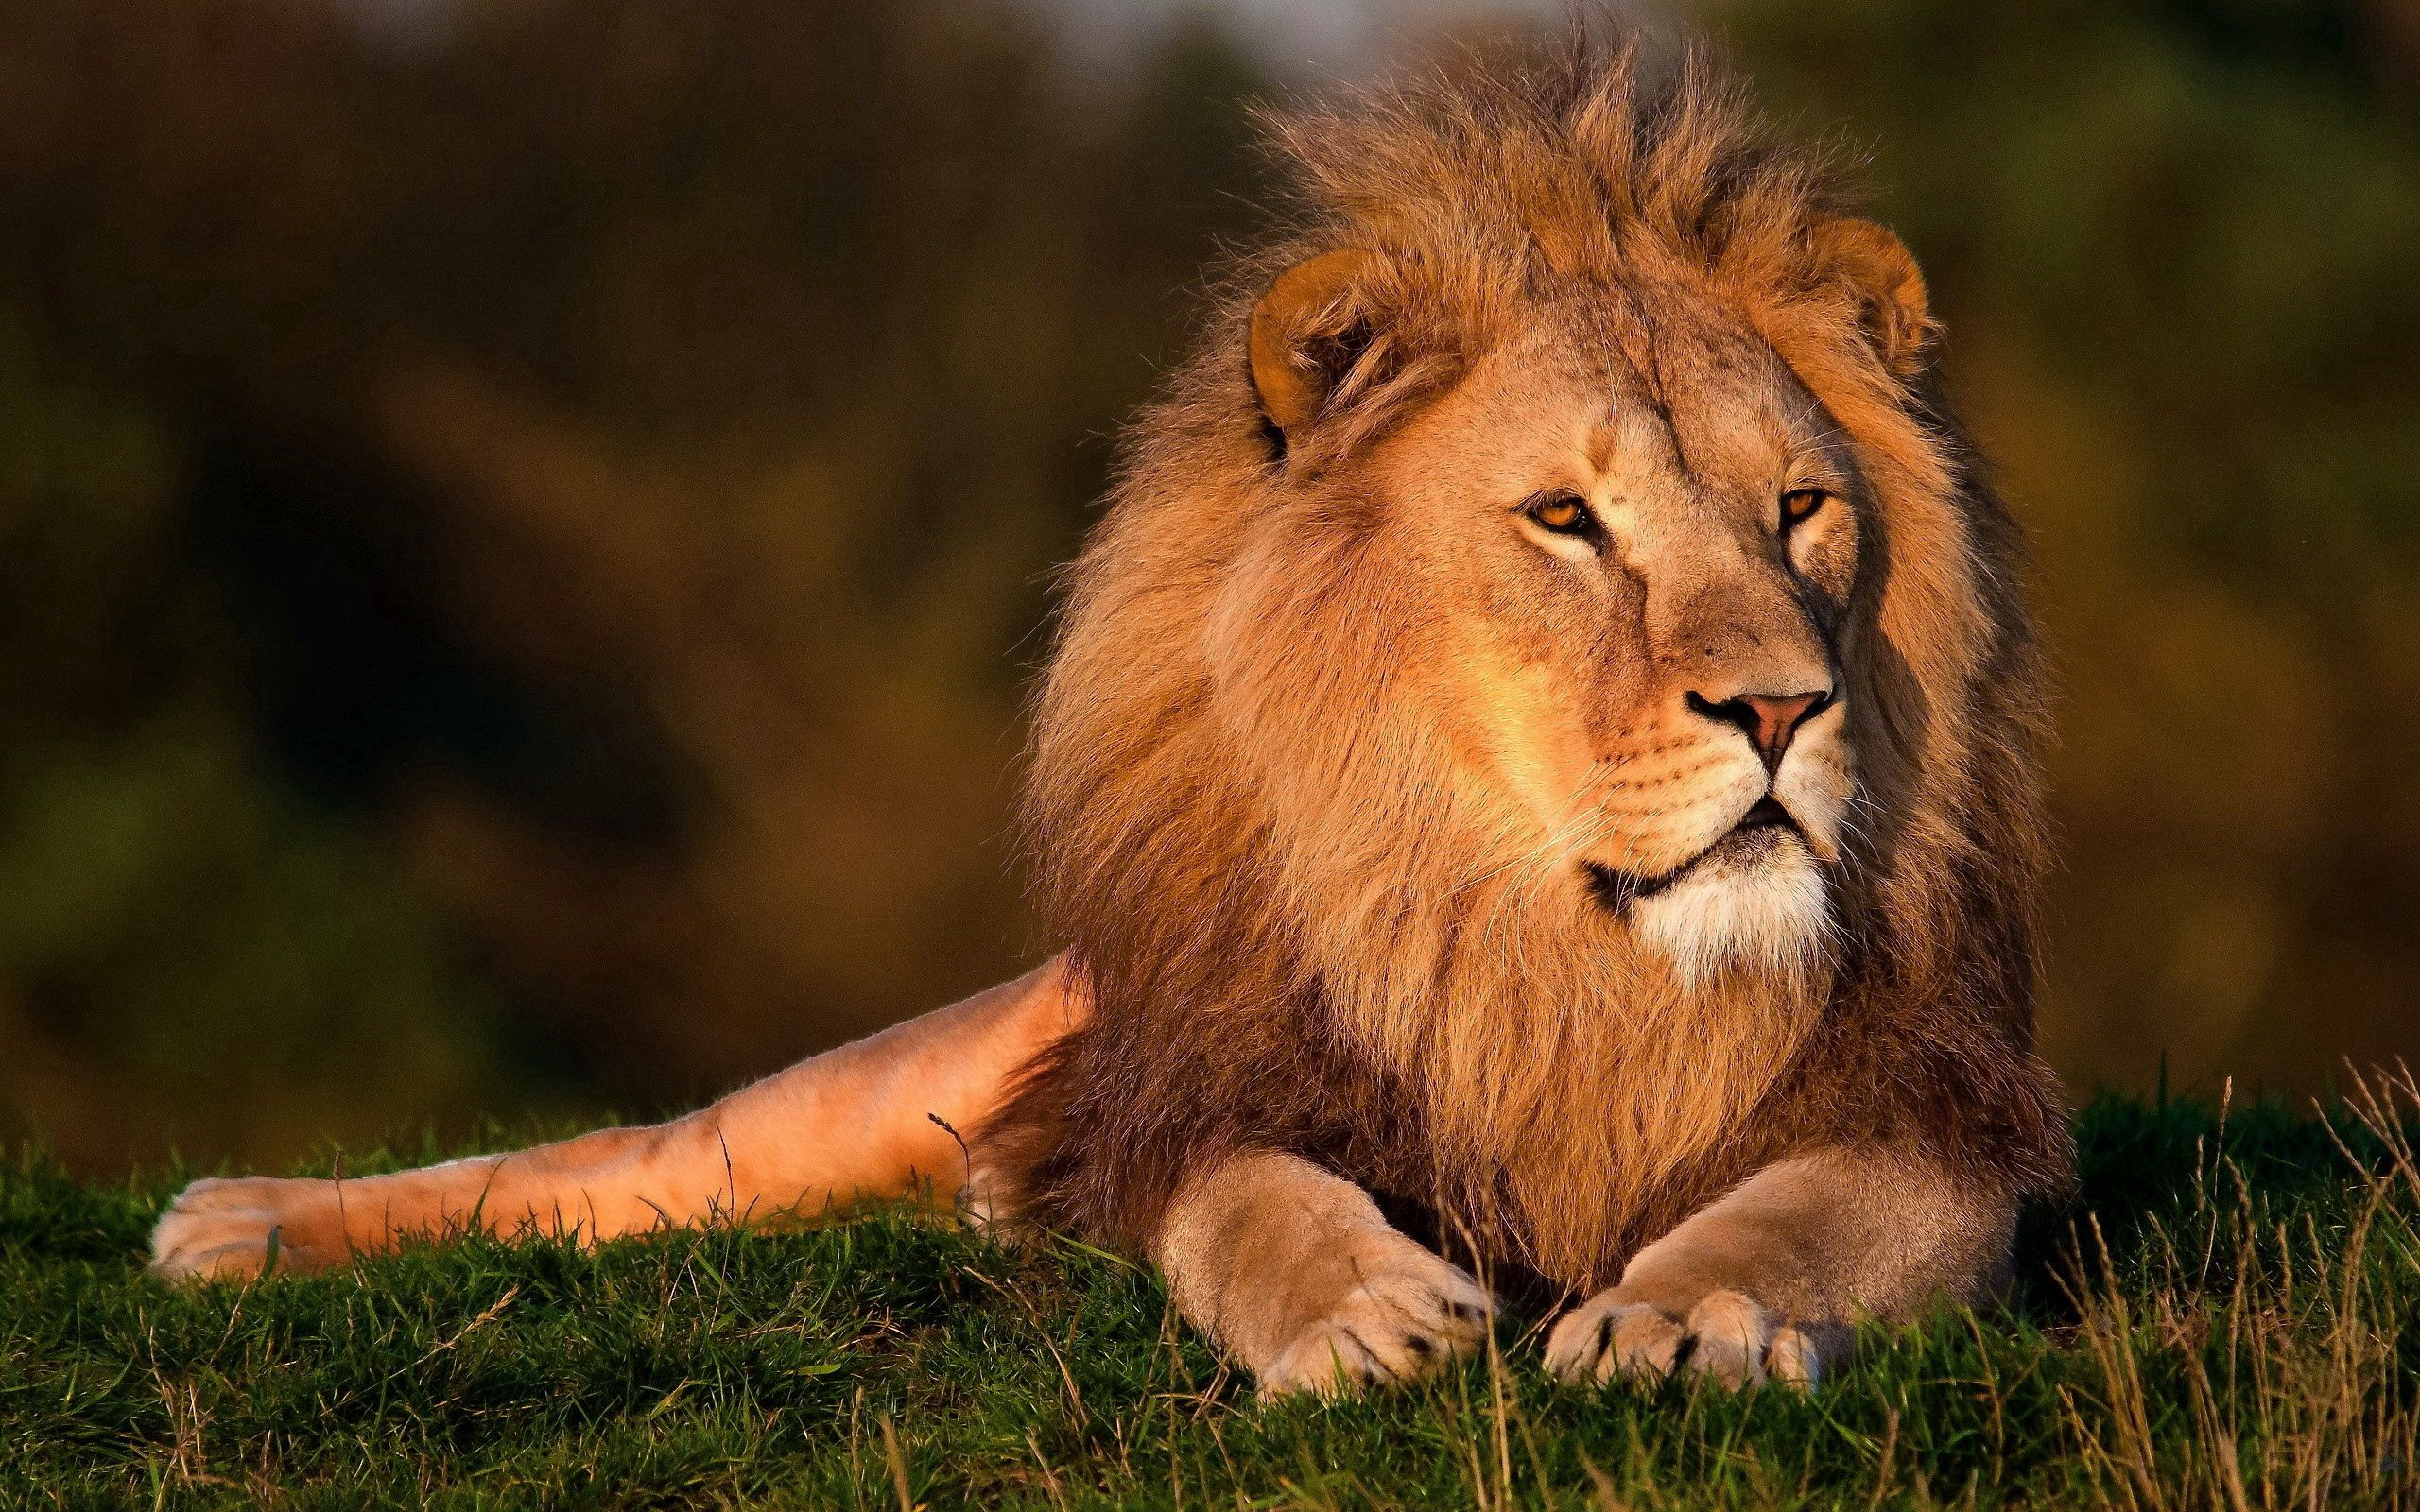 100118 download wallpaper Animals, Lion, Grass, Big Cat, King Of Beasts, King Of The Beasts, Mane screensavers and pictures for free